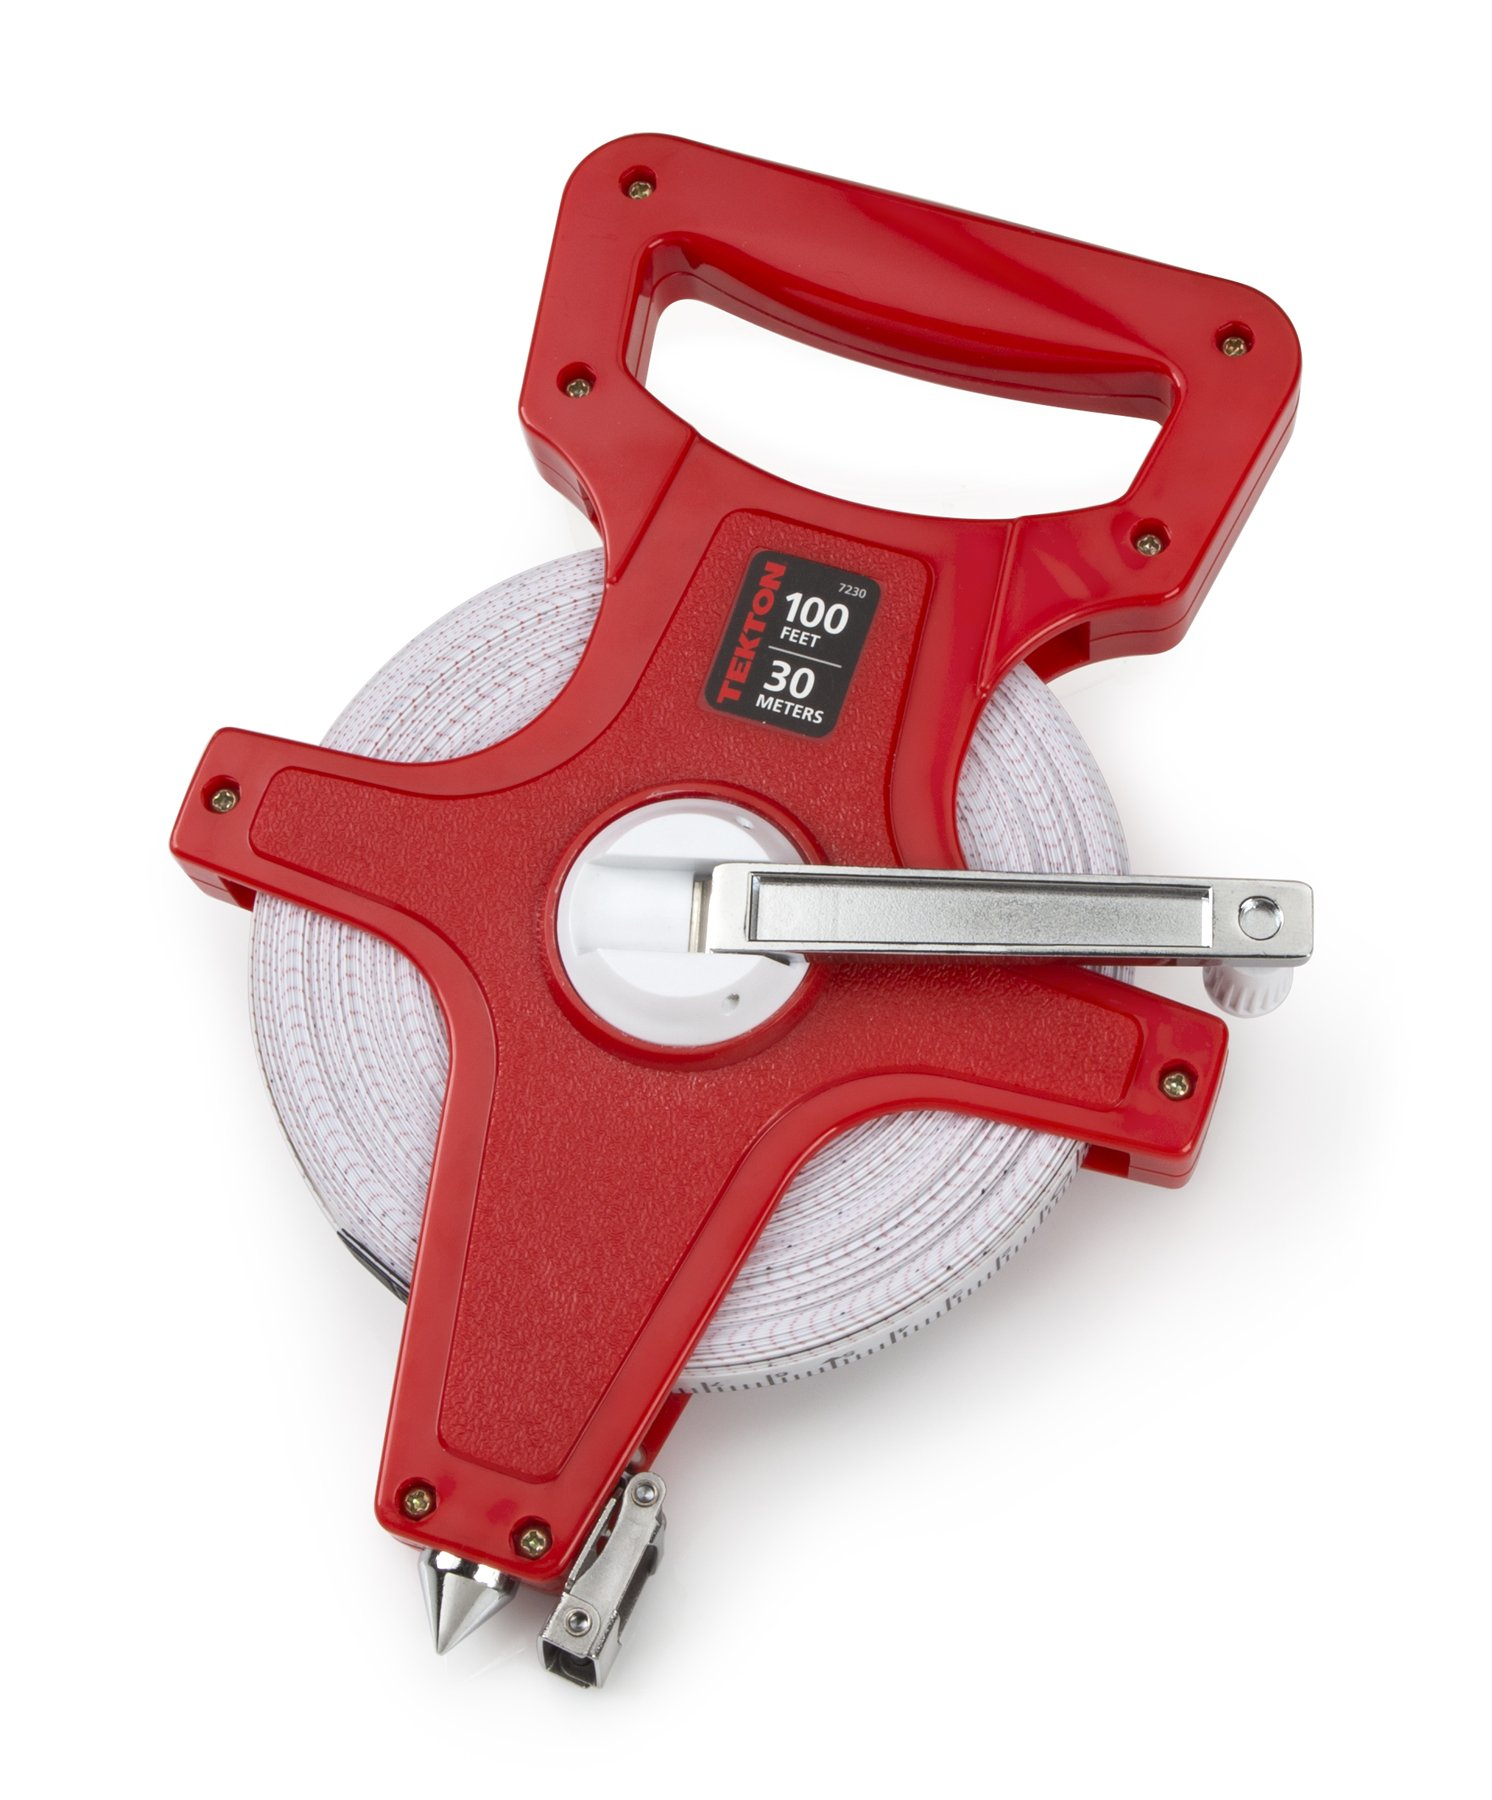 TEKTON 7230 100-Foot Fiberglass Tape Measure